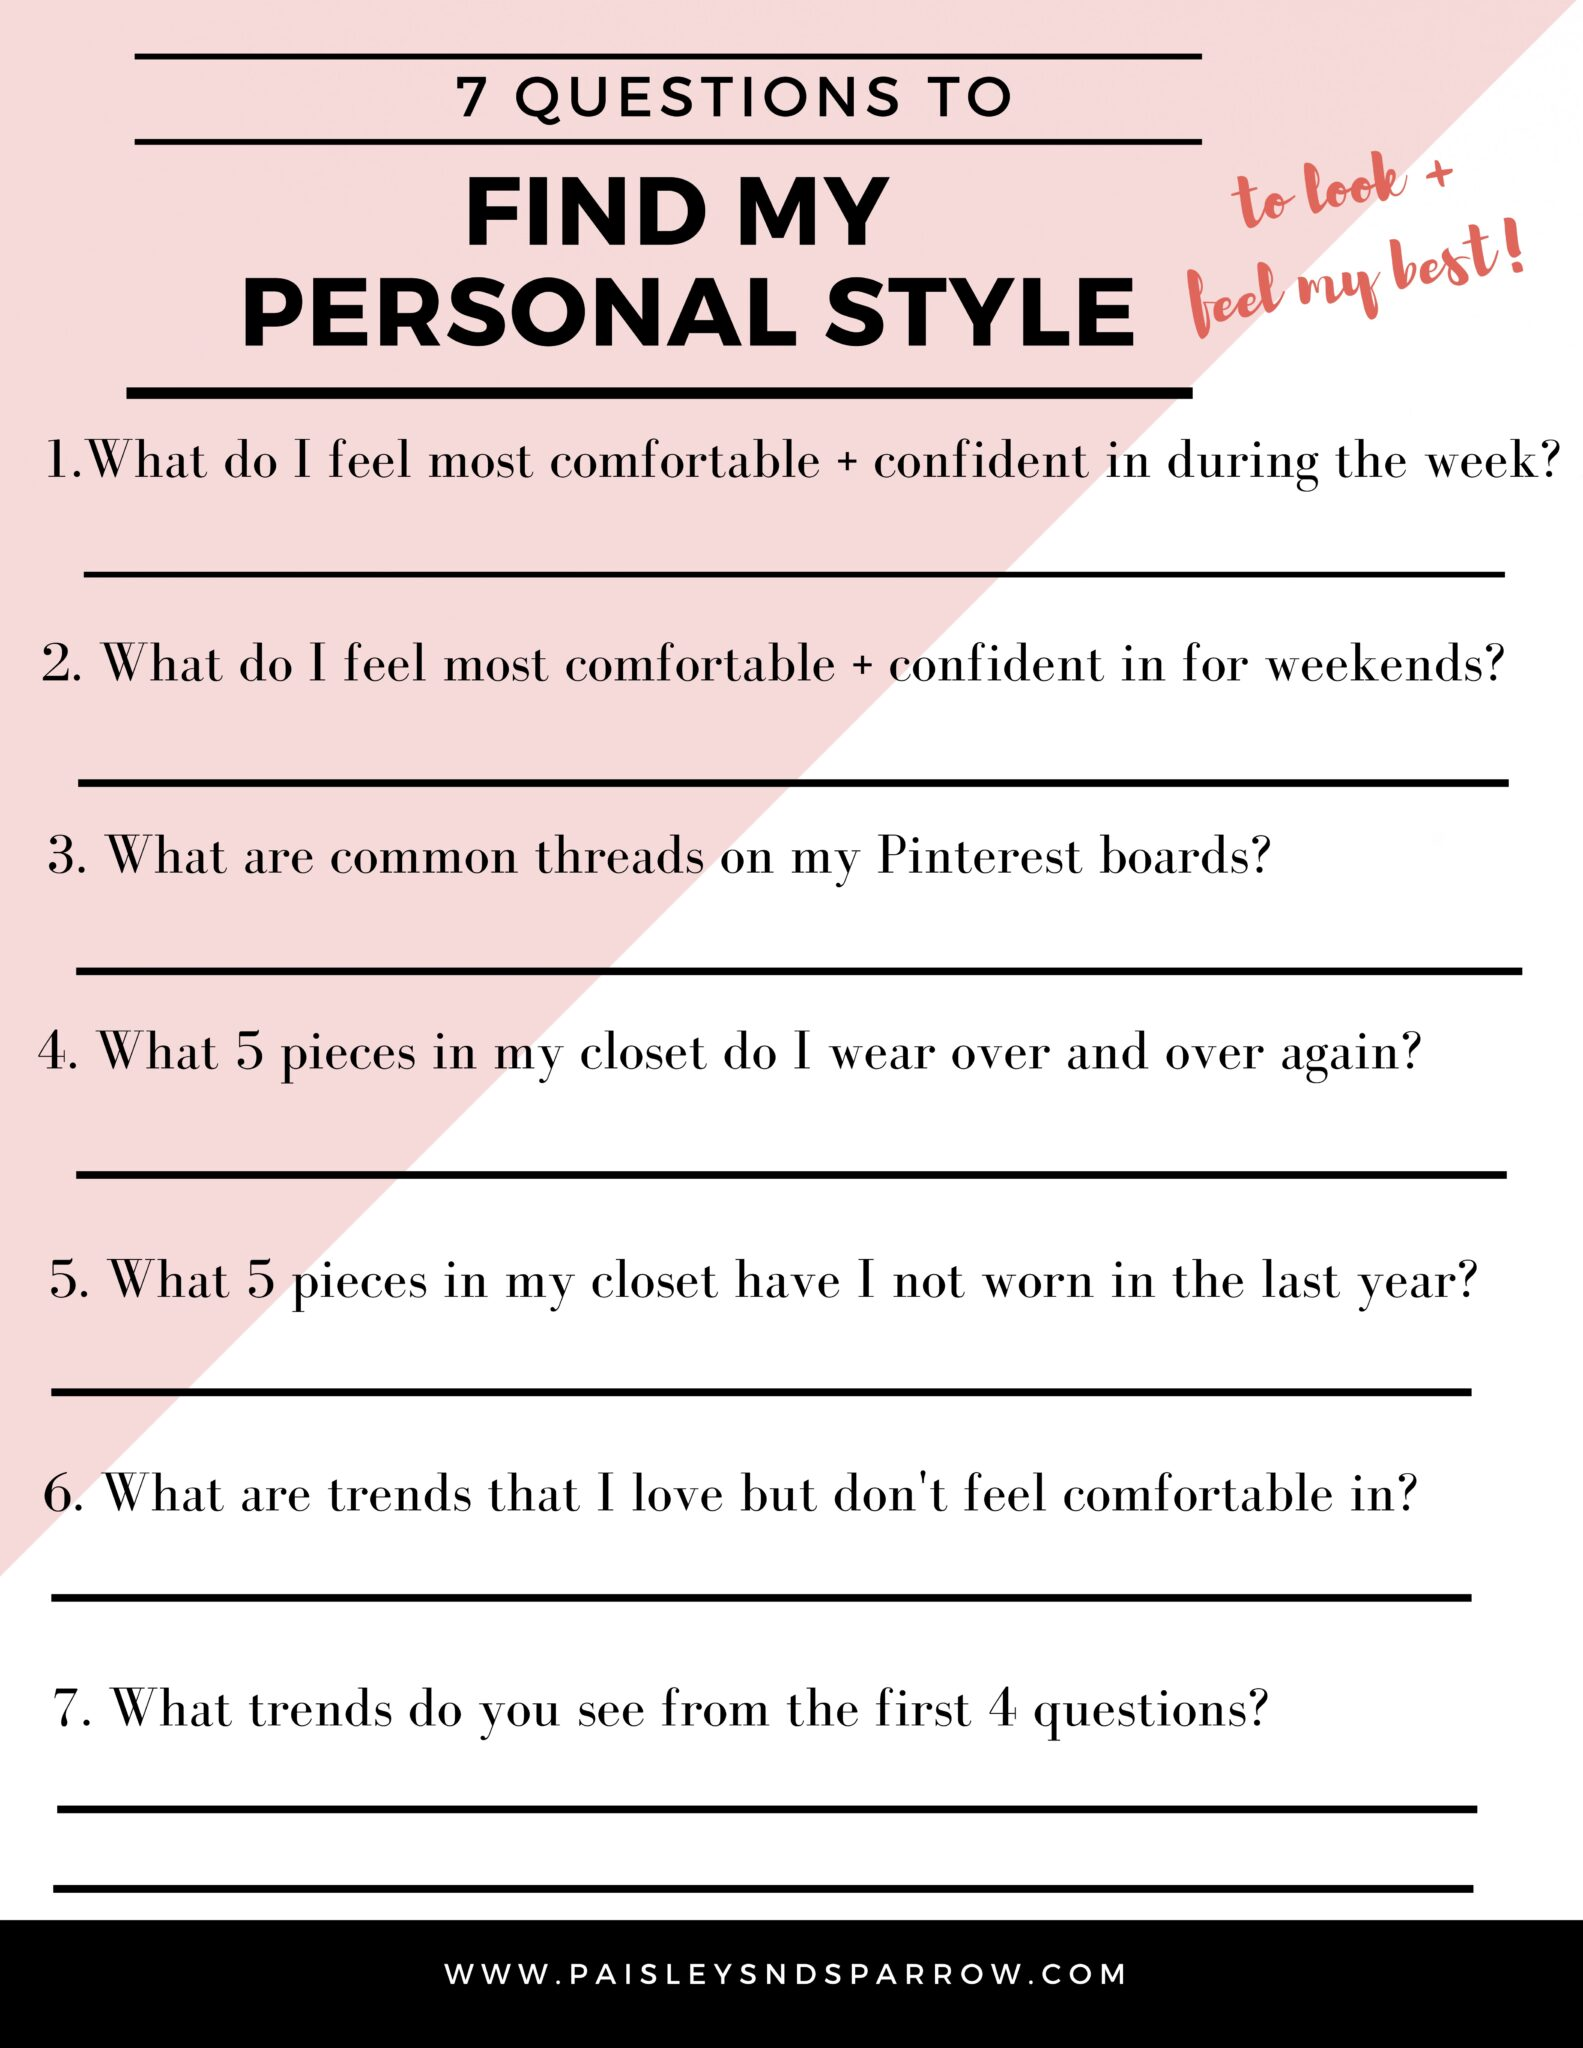 7 Questions for finding your personal style